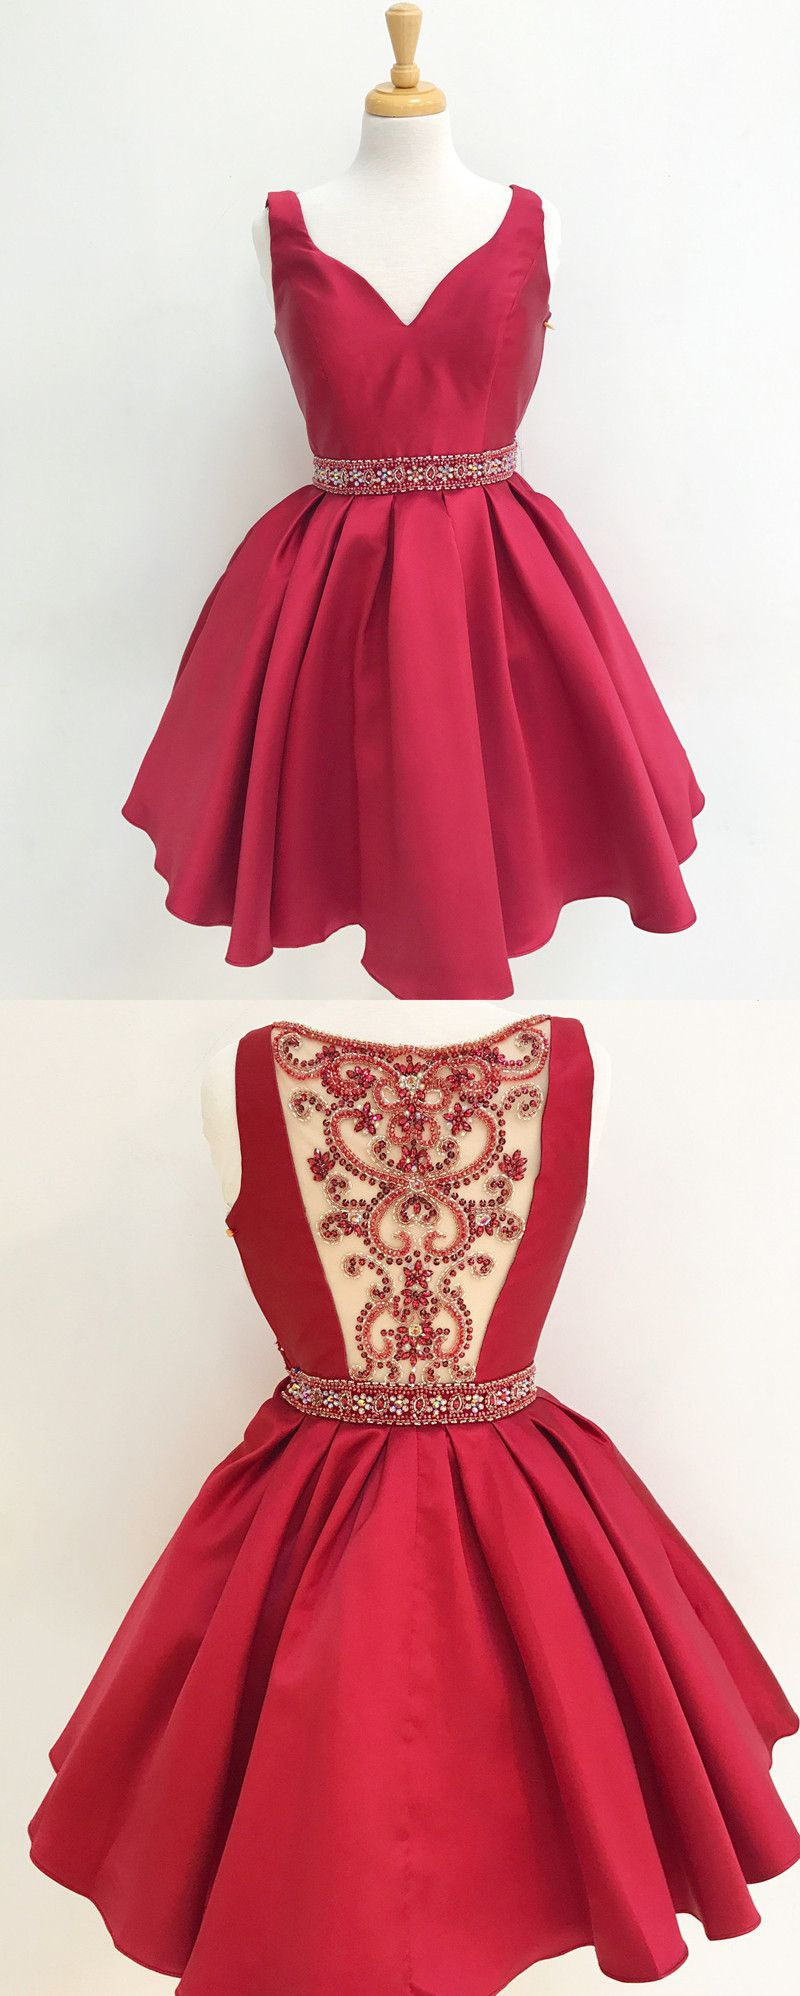 Short homecoming dress beads back short red homecoming dress party